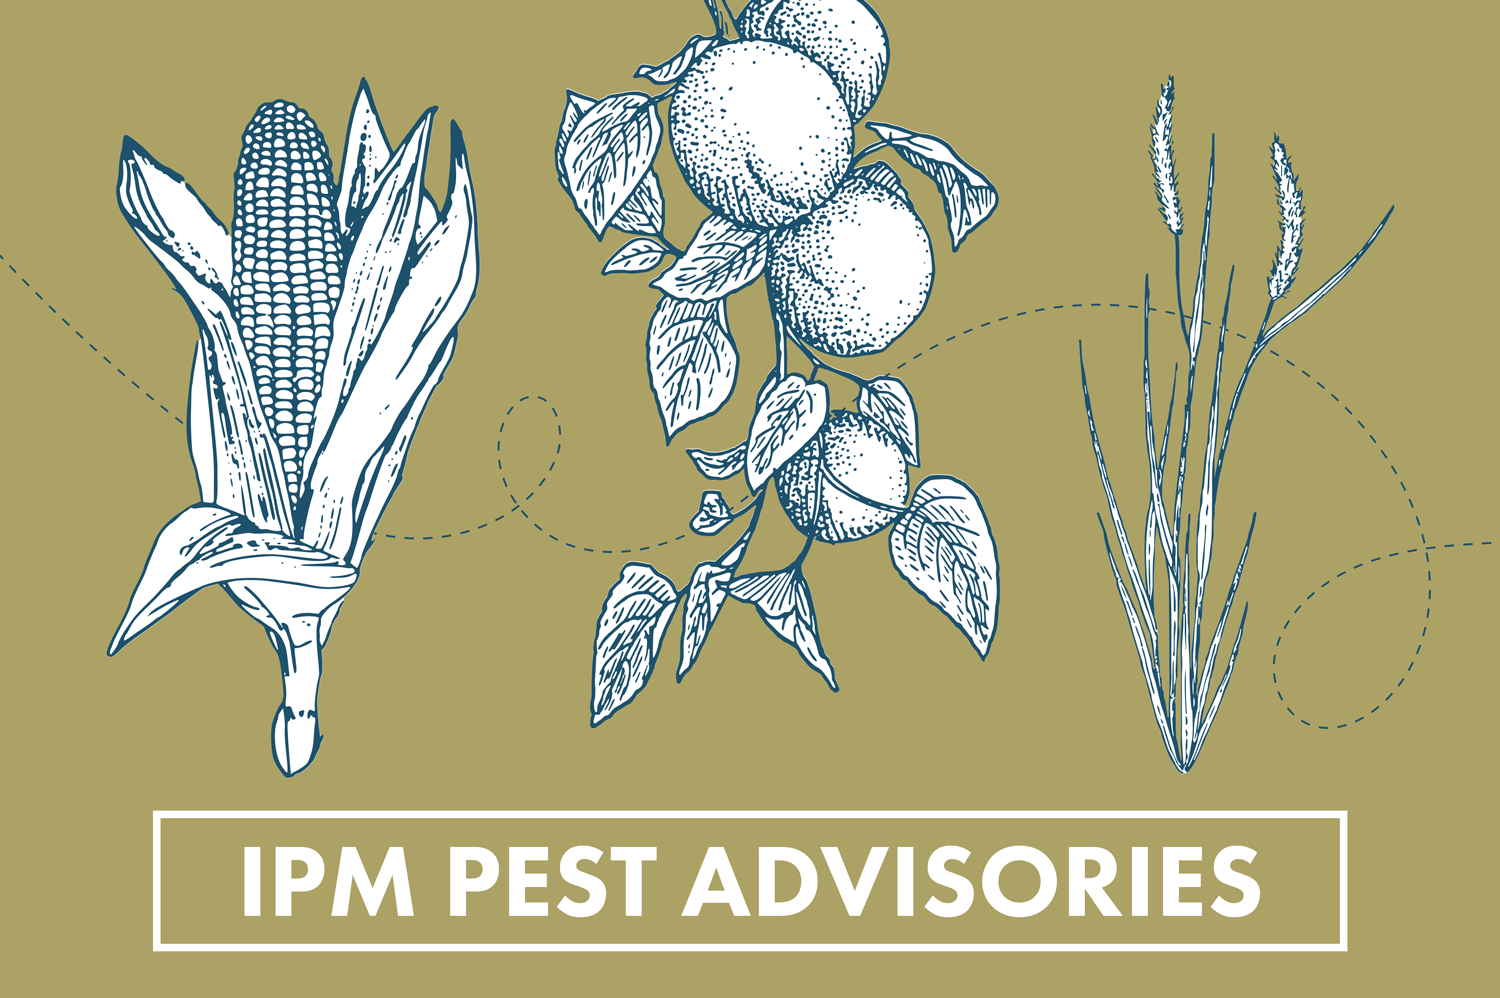 IPM Pest Advisories